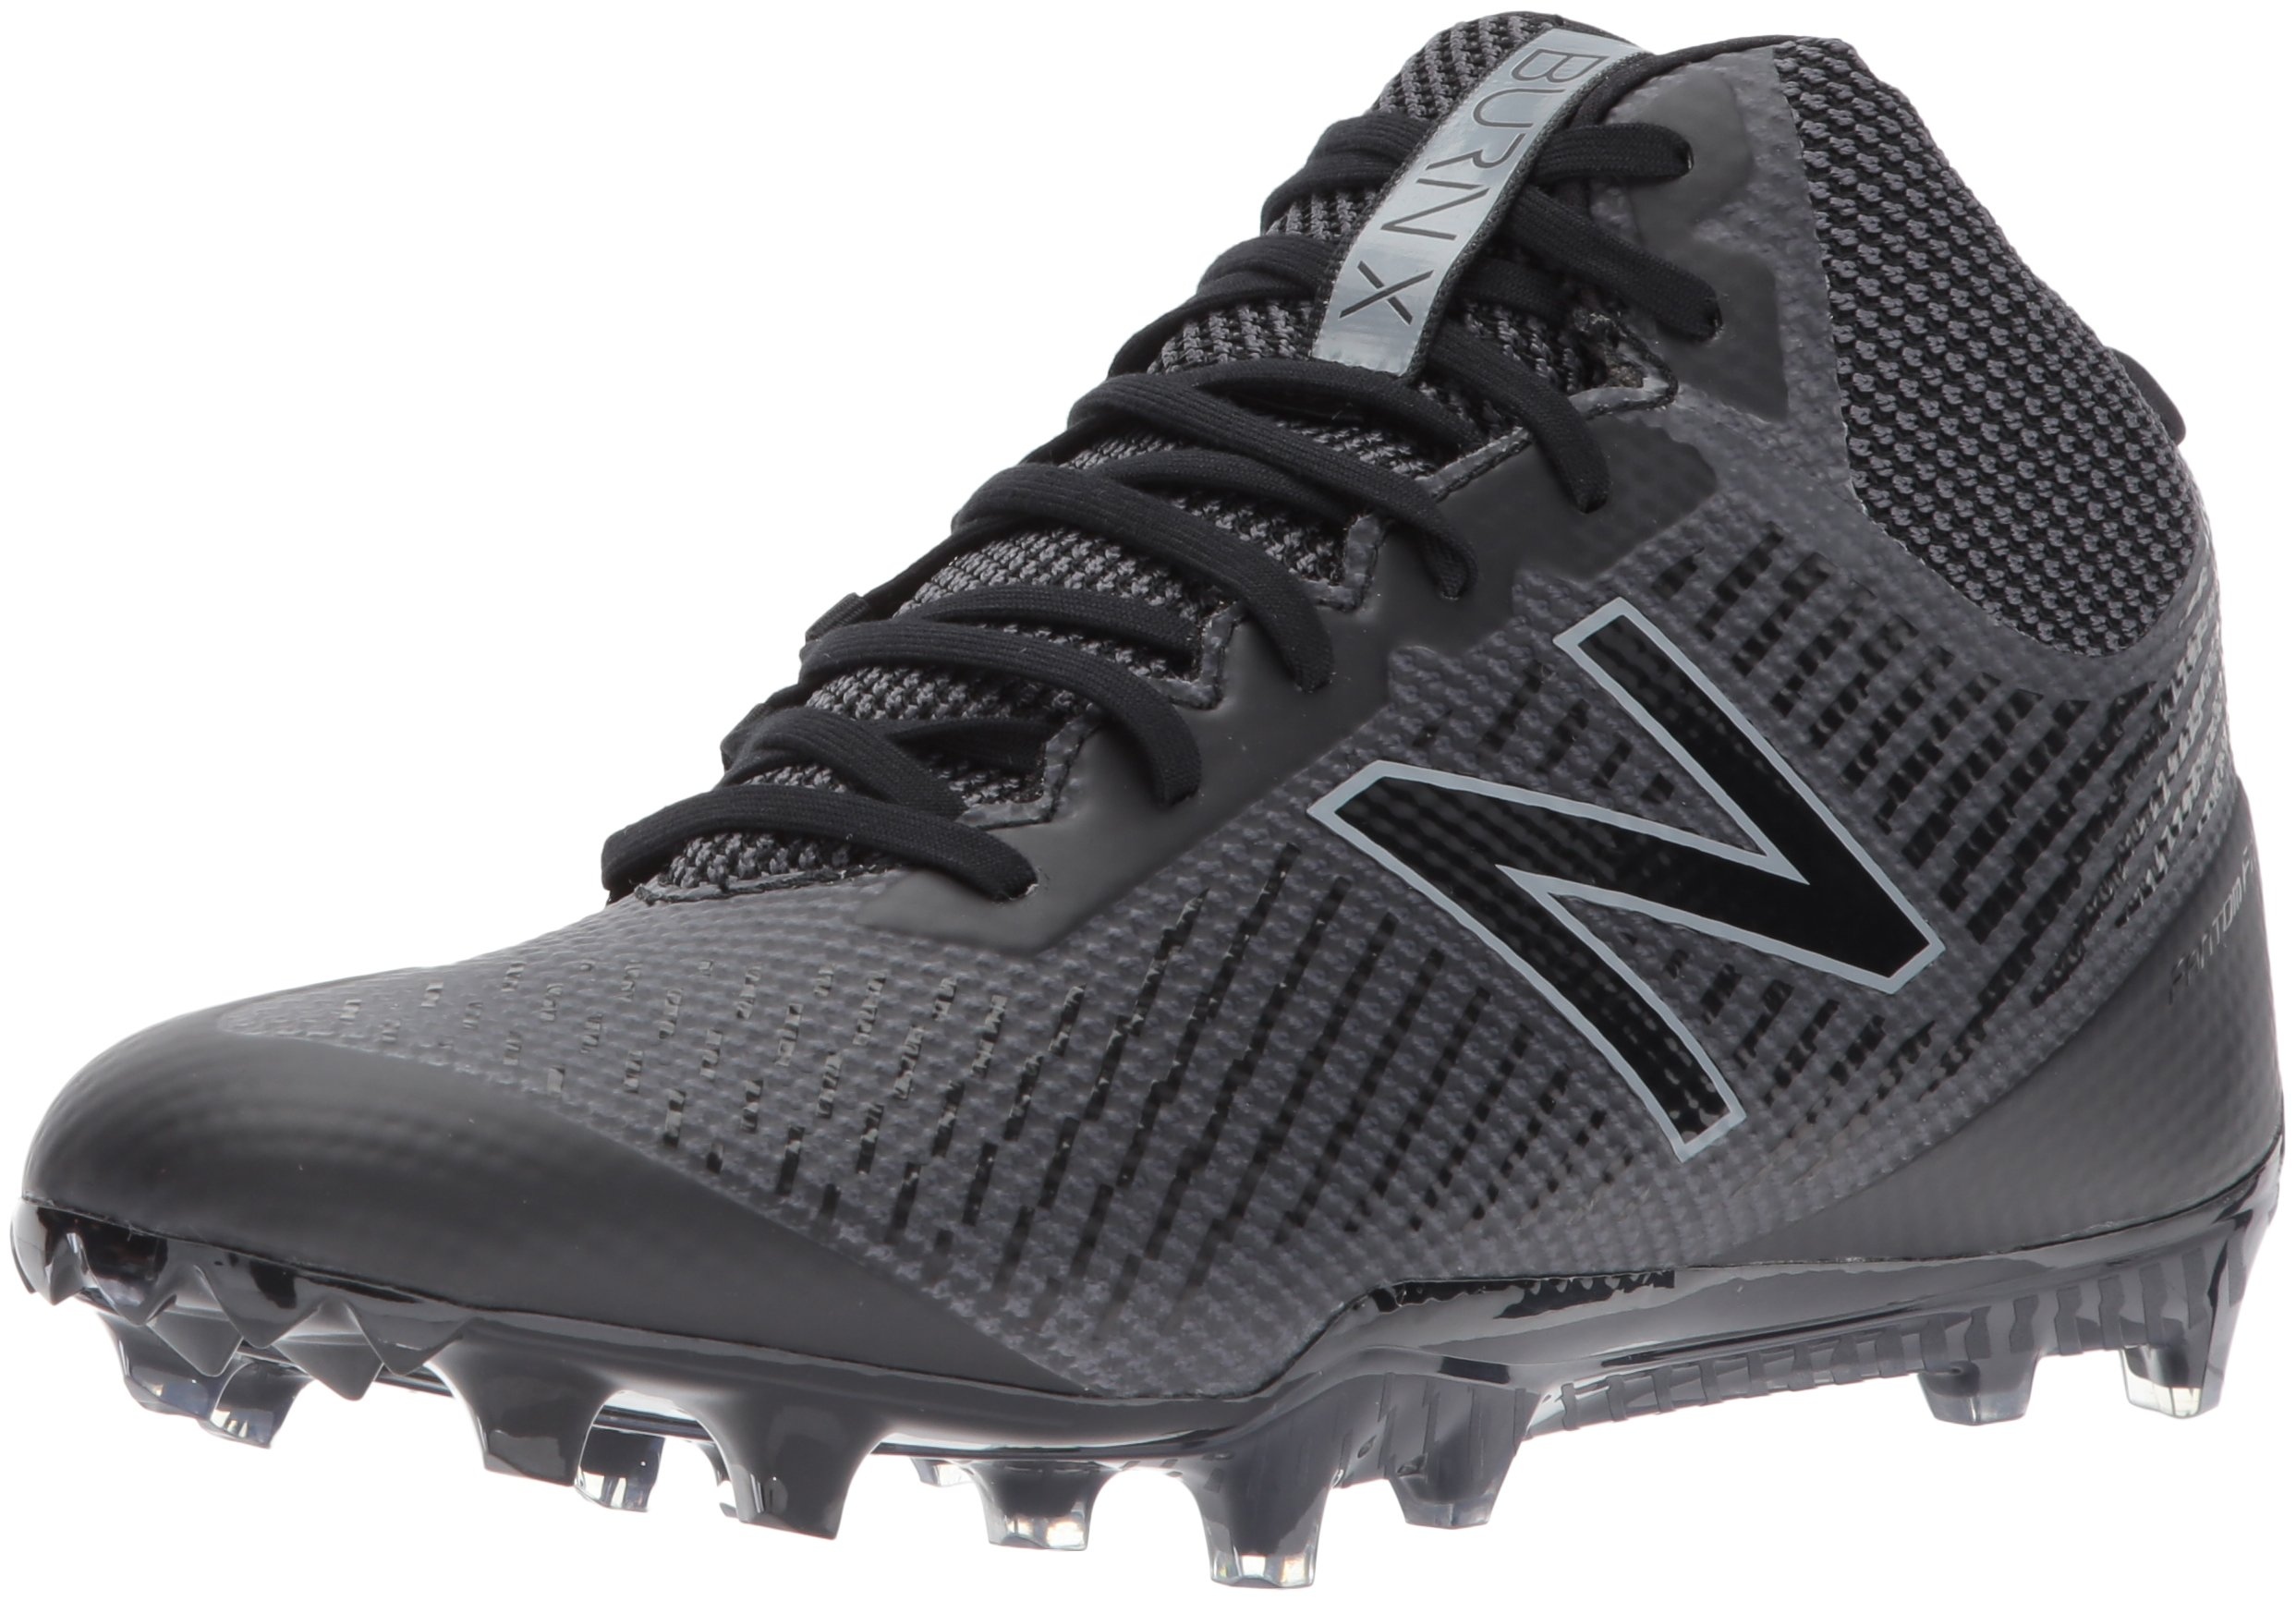 New Balance Men's Burn Mid Speed Lacrosse Shoe, Black, 9.5 D US by New Balance